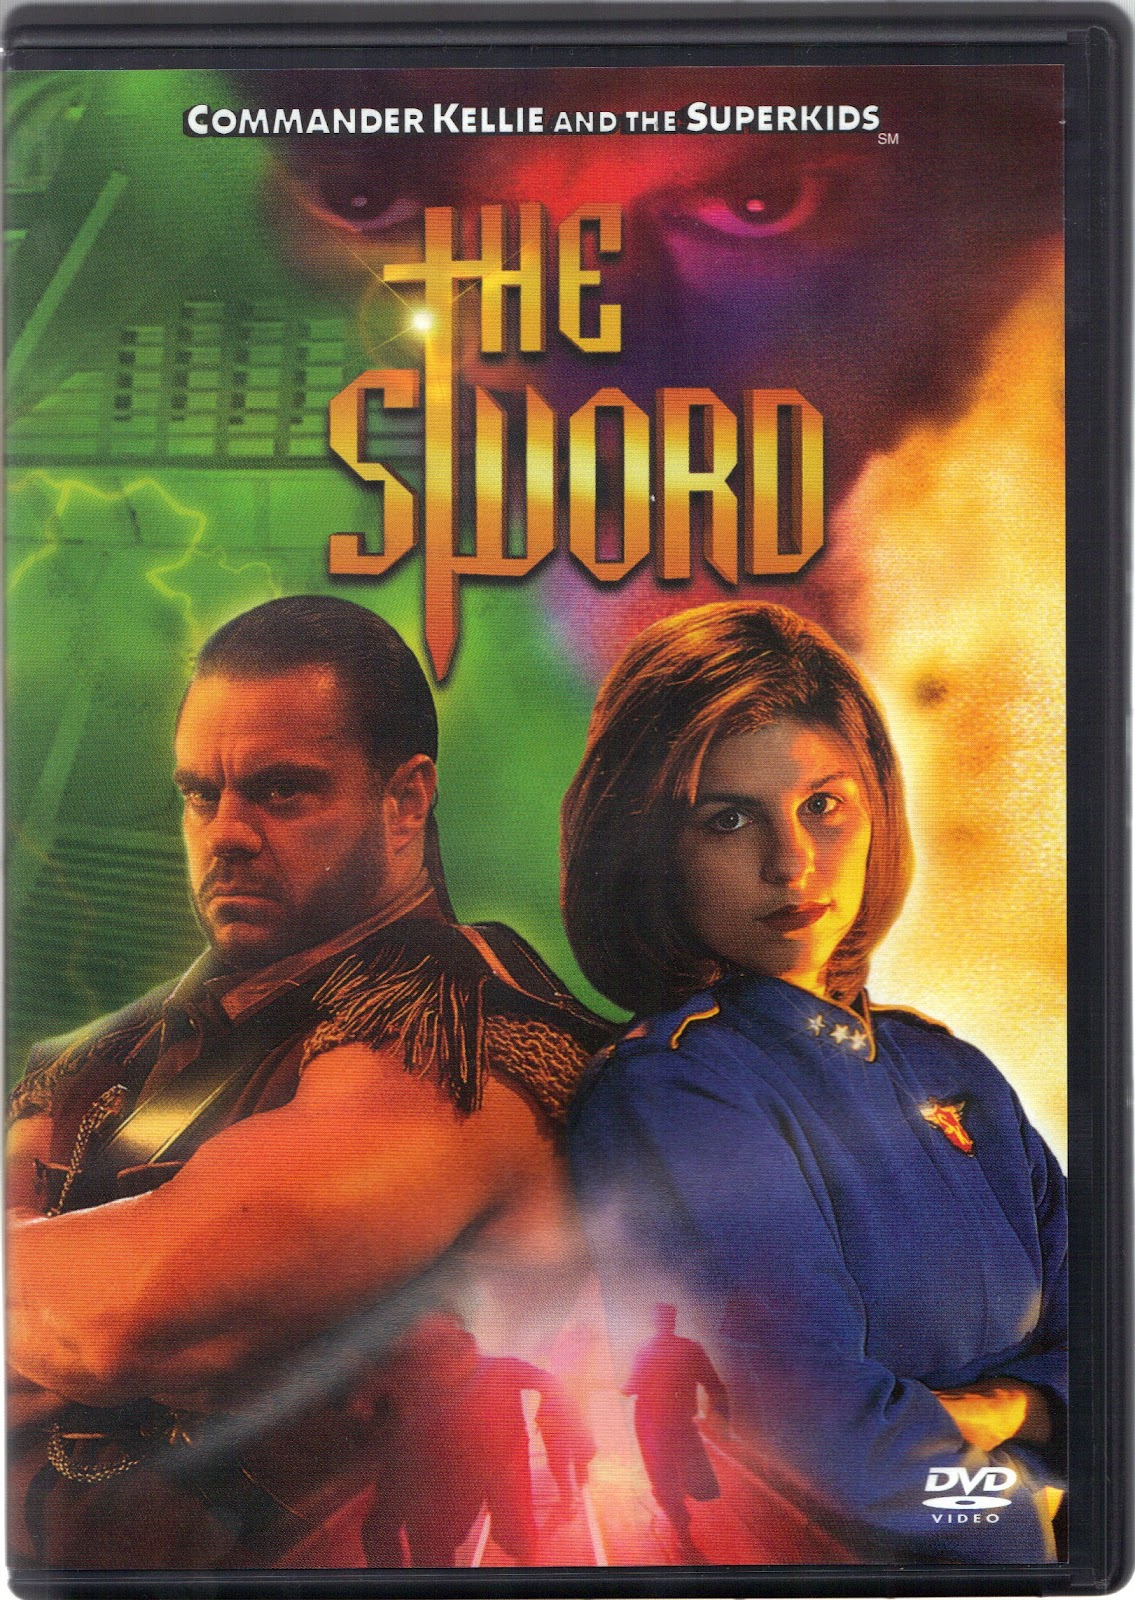 Commander Kellie and the Superkids: The Sword (Video 1997) - IMDb